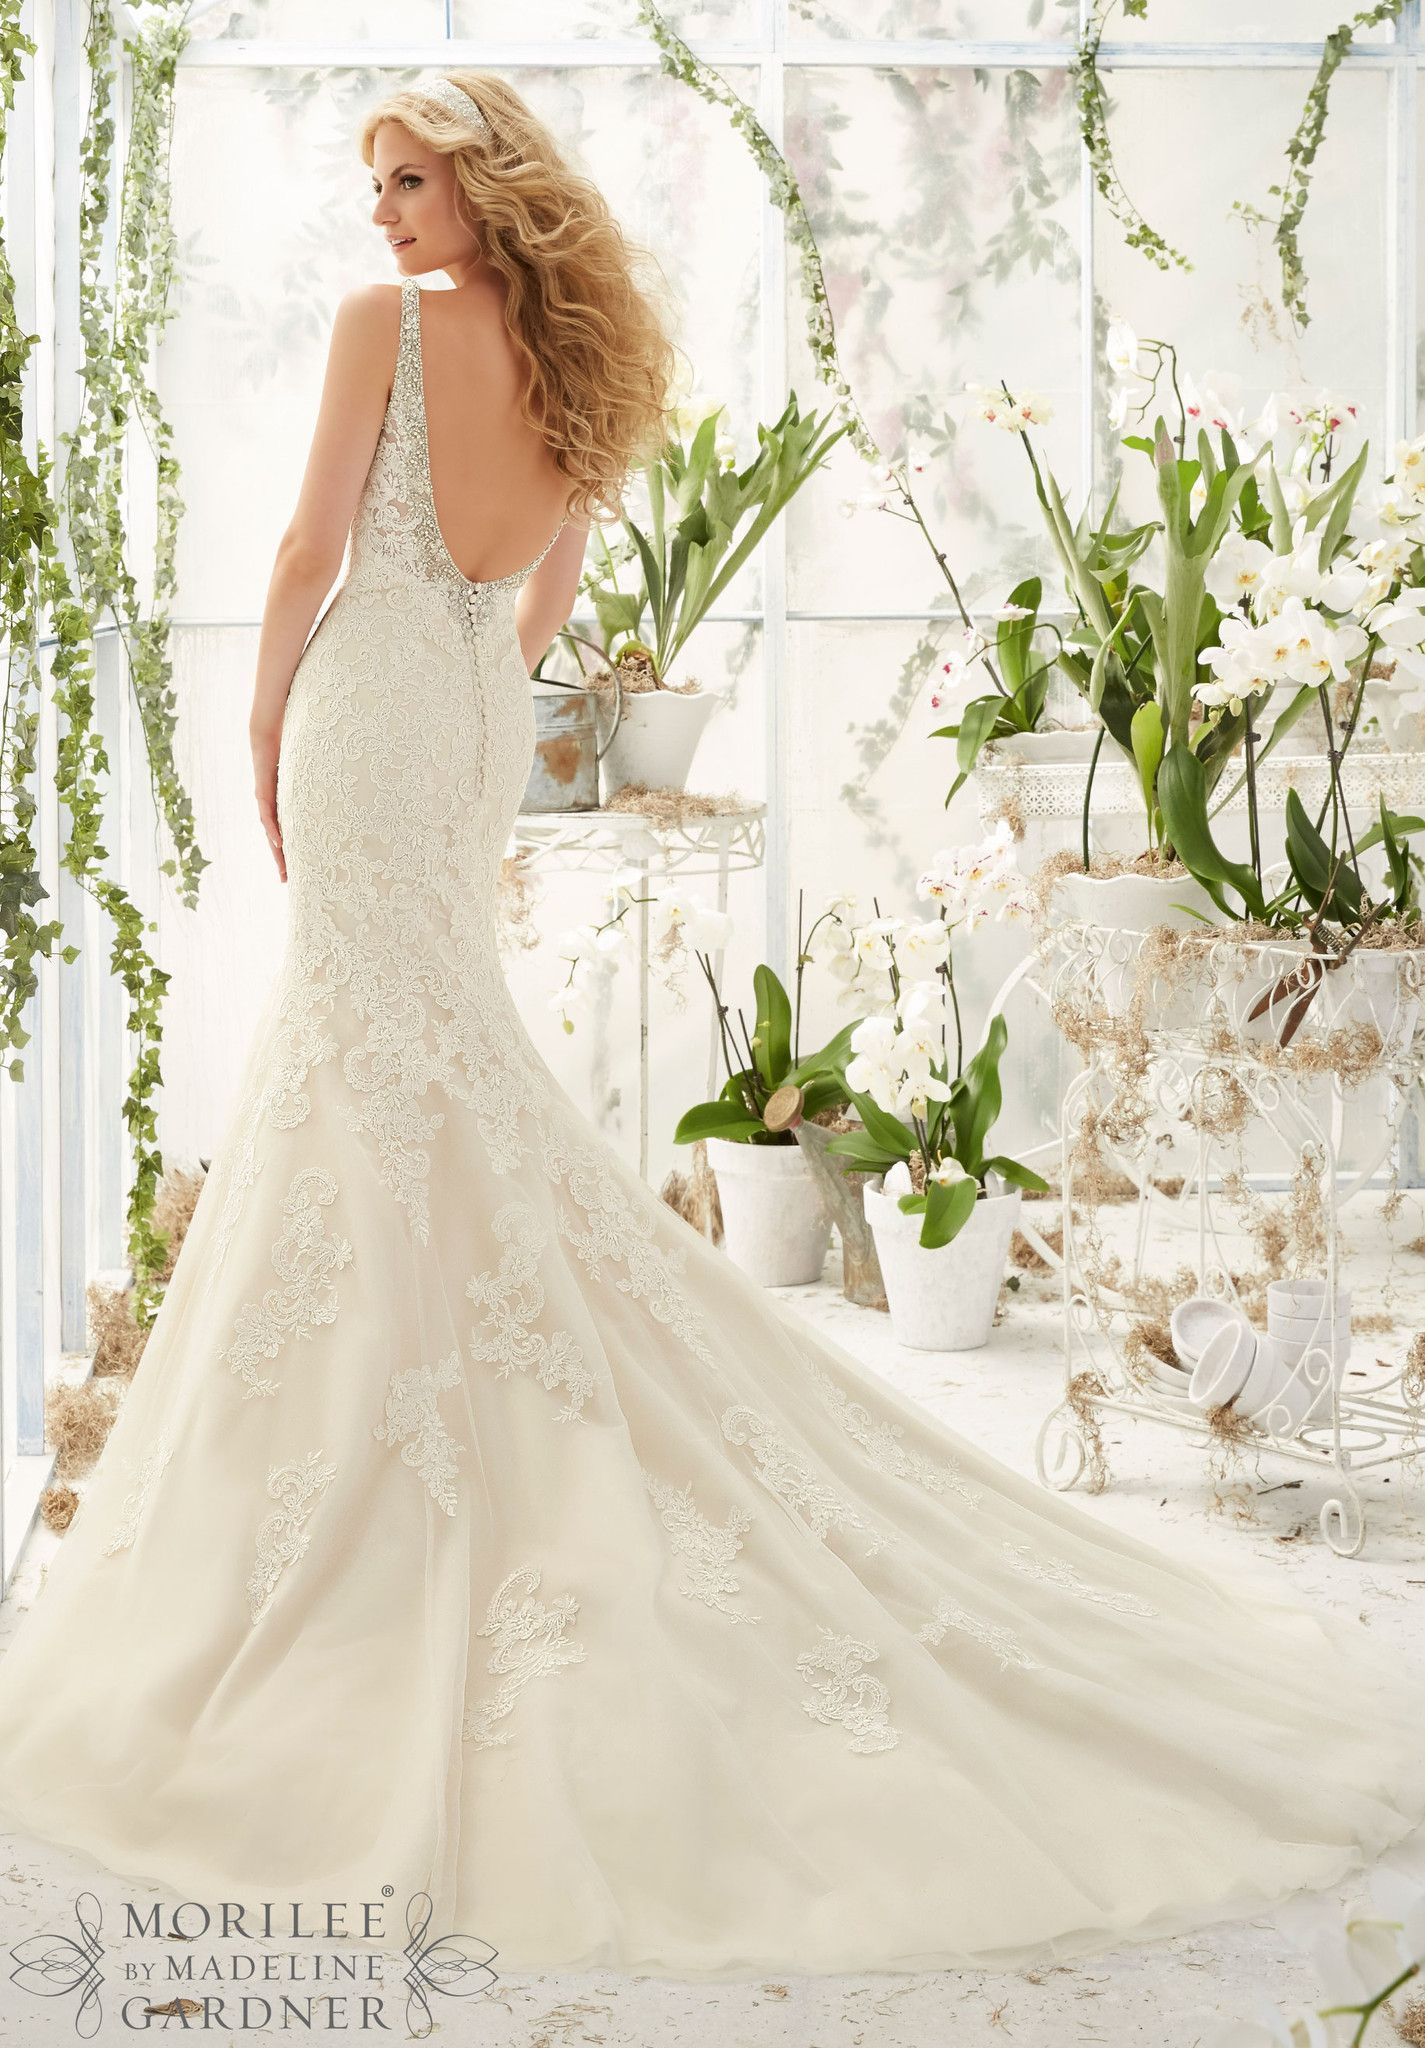 Mori lee wedding dresses discontinued styles  Blog  Mori lee Bridal gowns and Gowns